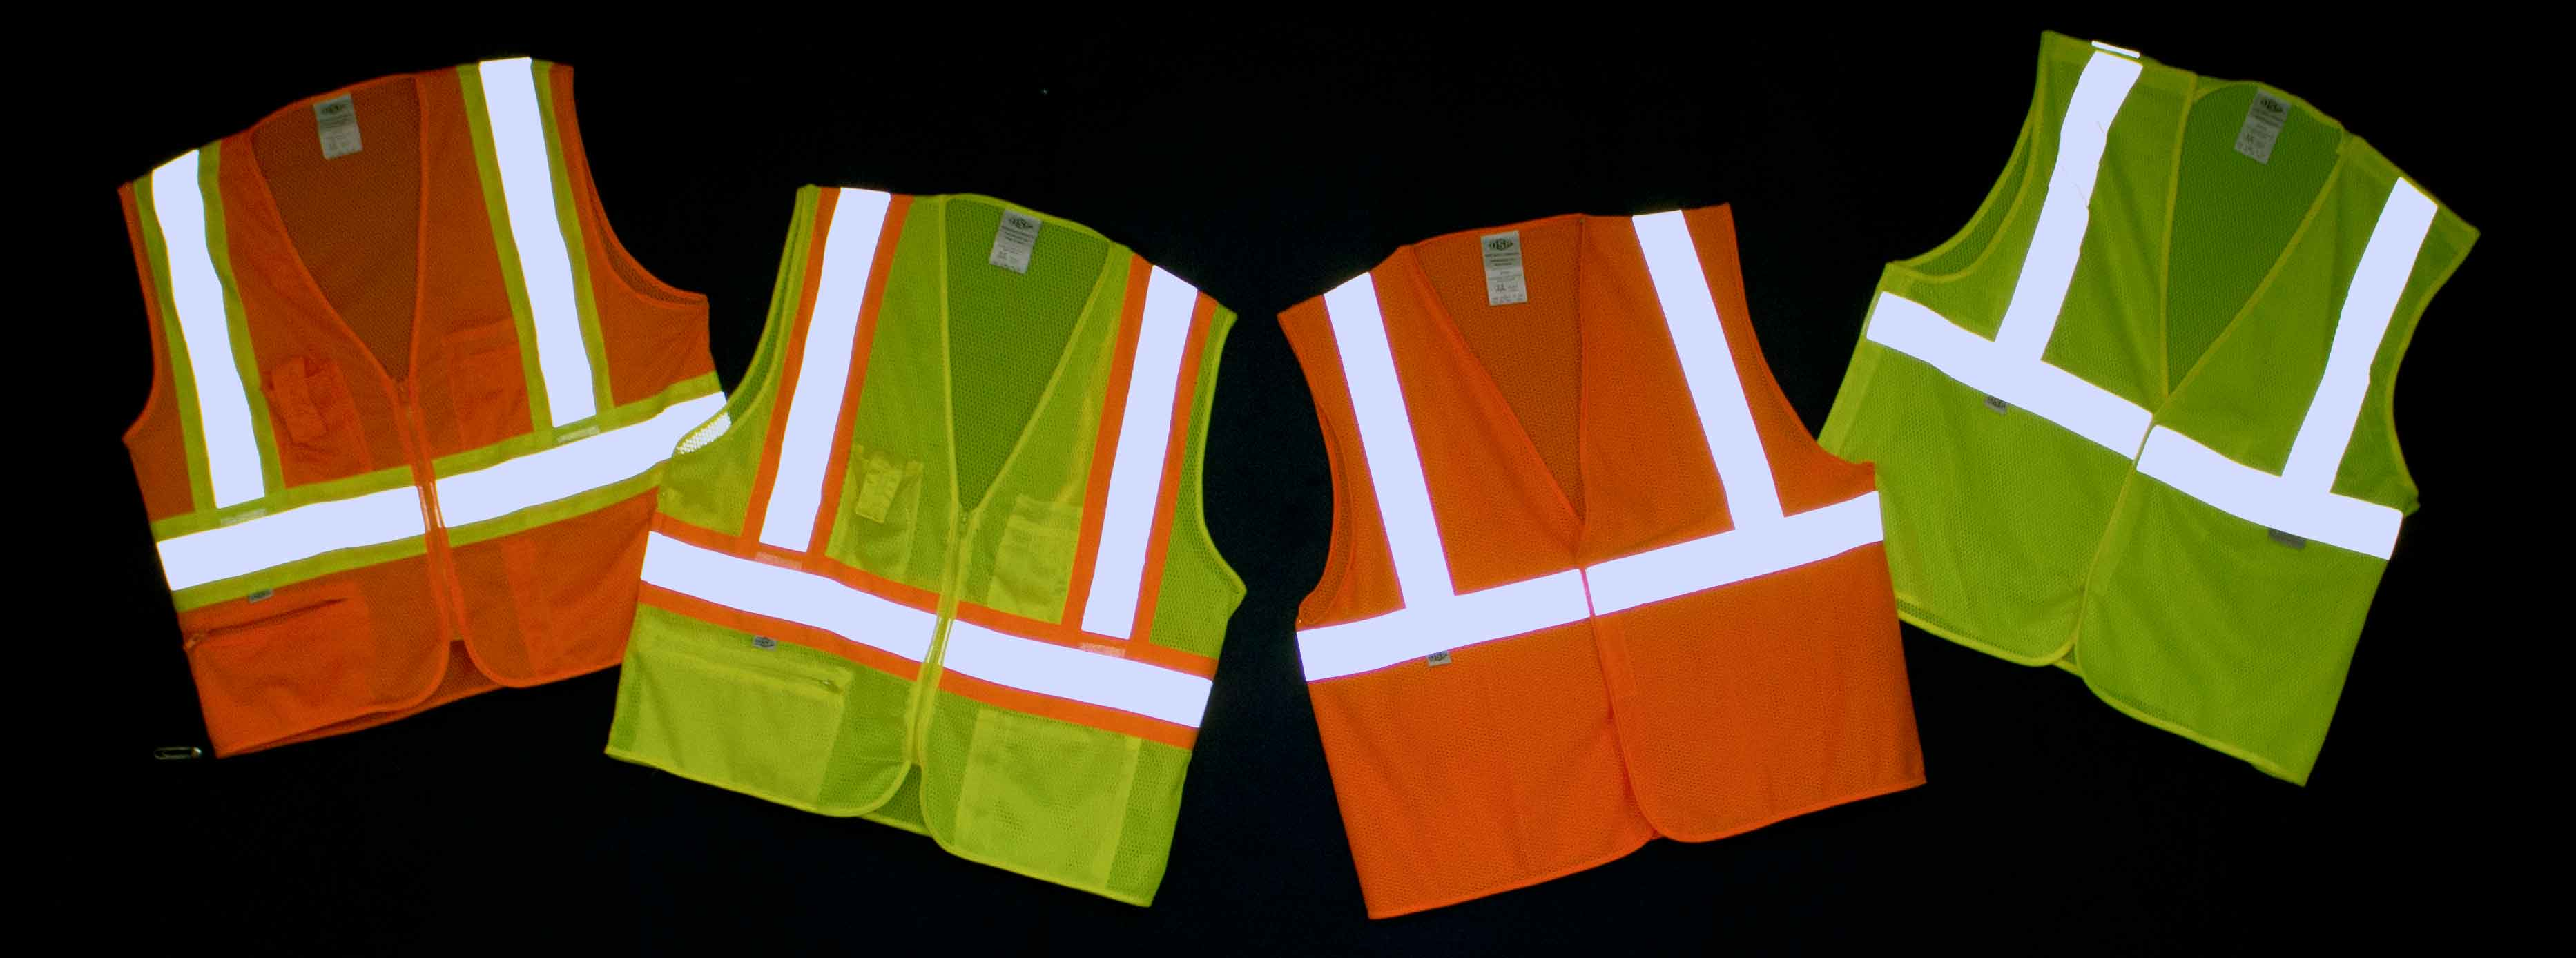 Safety Vest Collage - SA-SO Signs and Safety